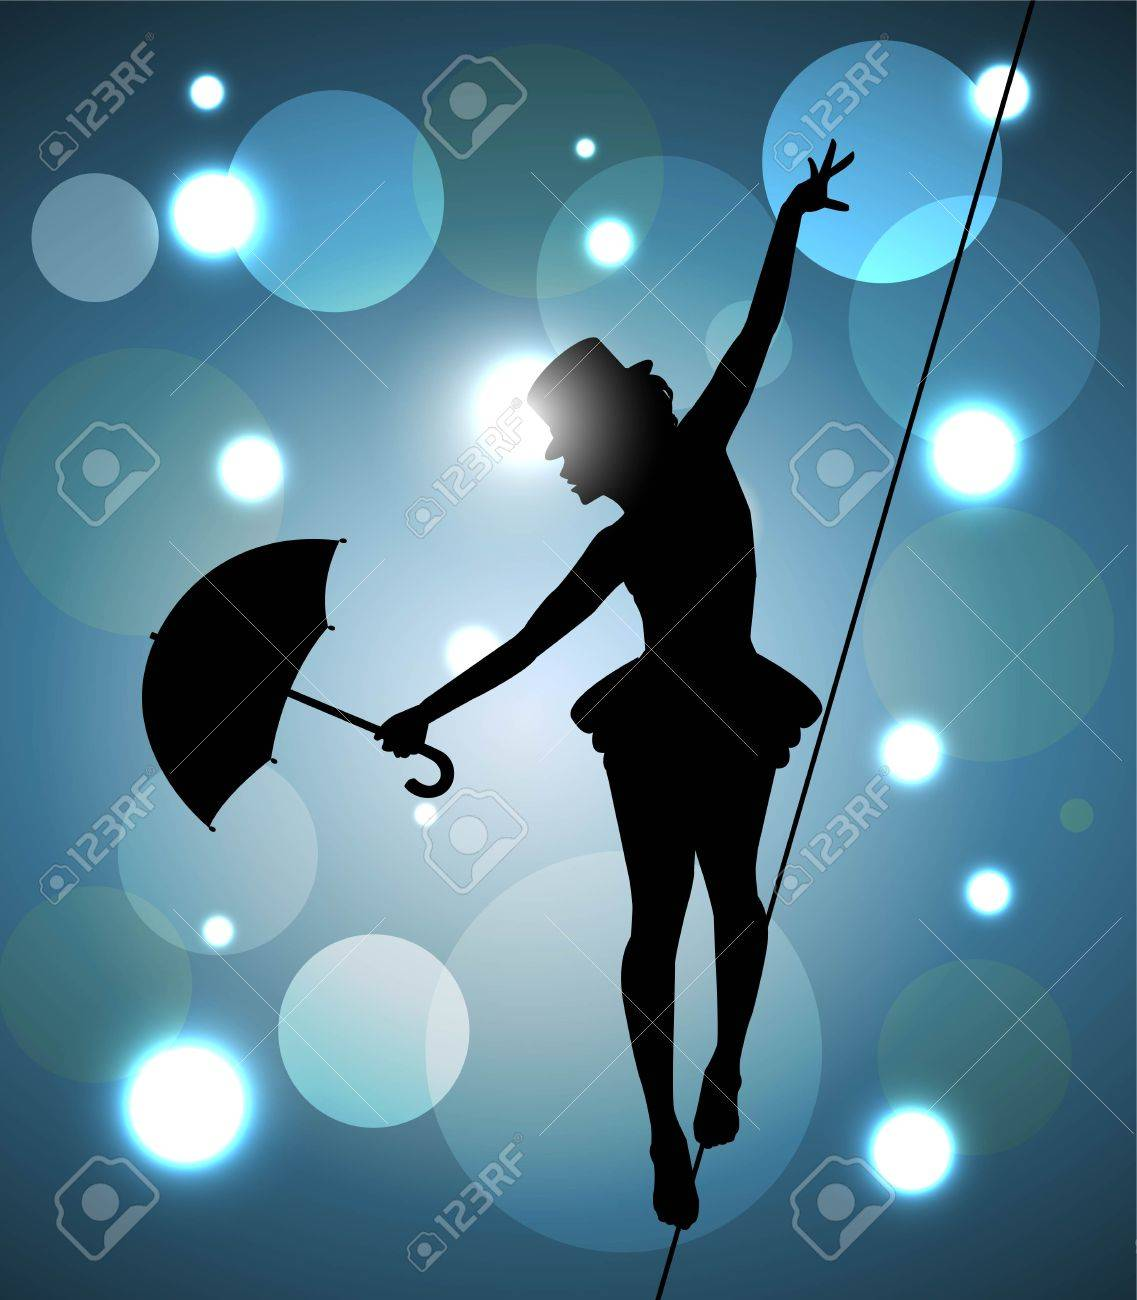 Tightrope Walker Girl With Umbrella Balancing On The Wire Royalty ...